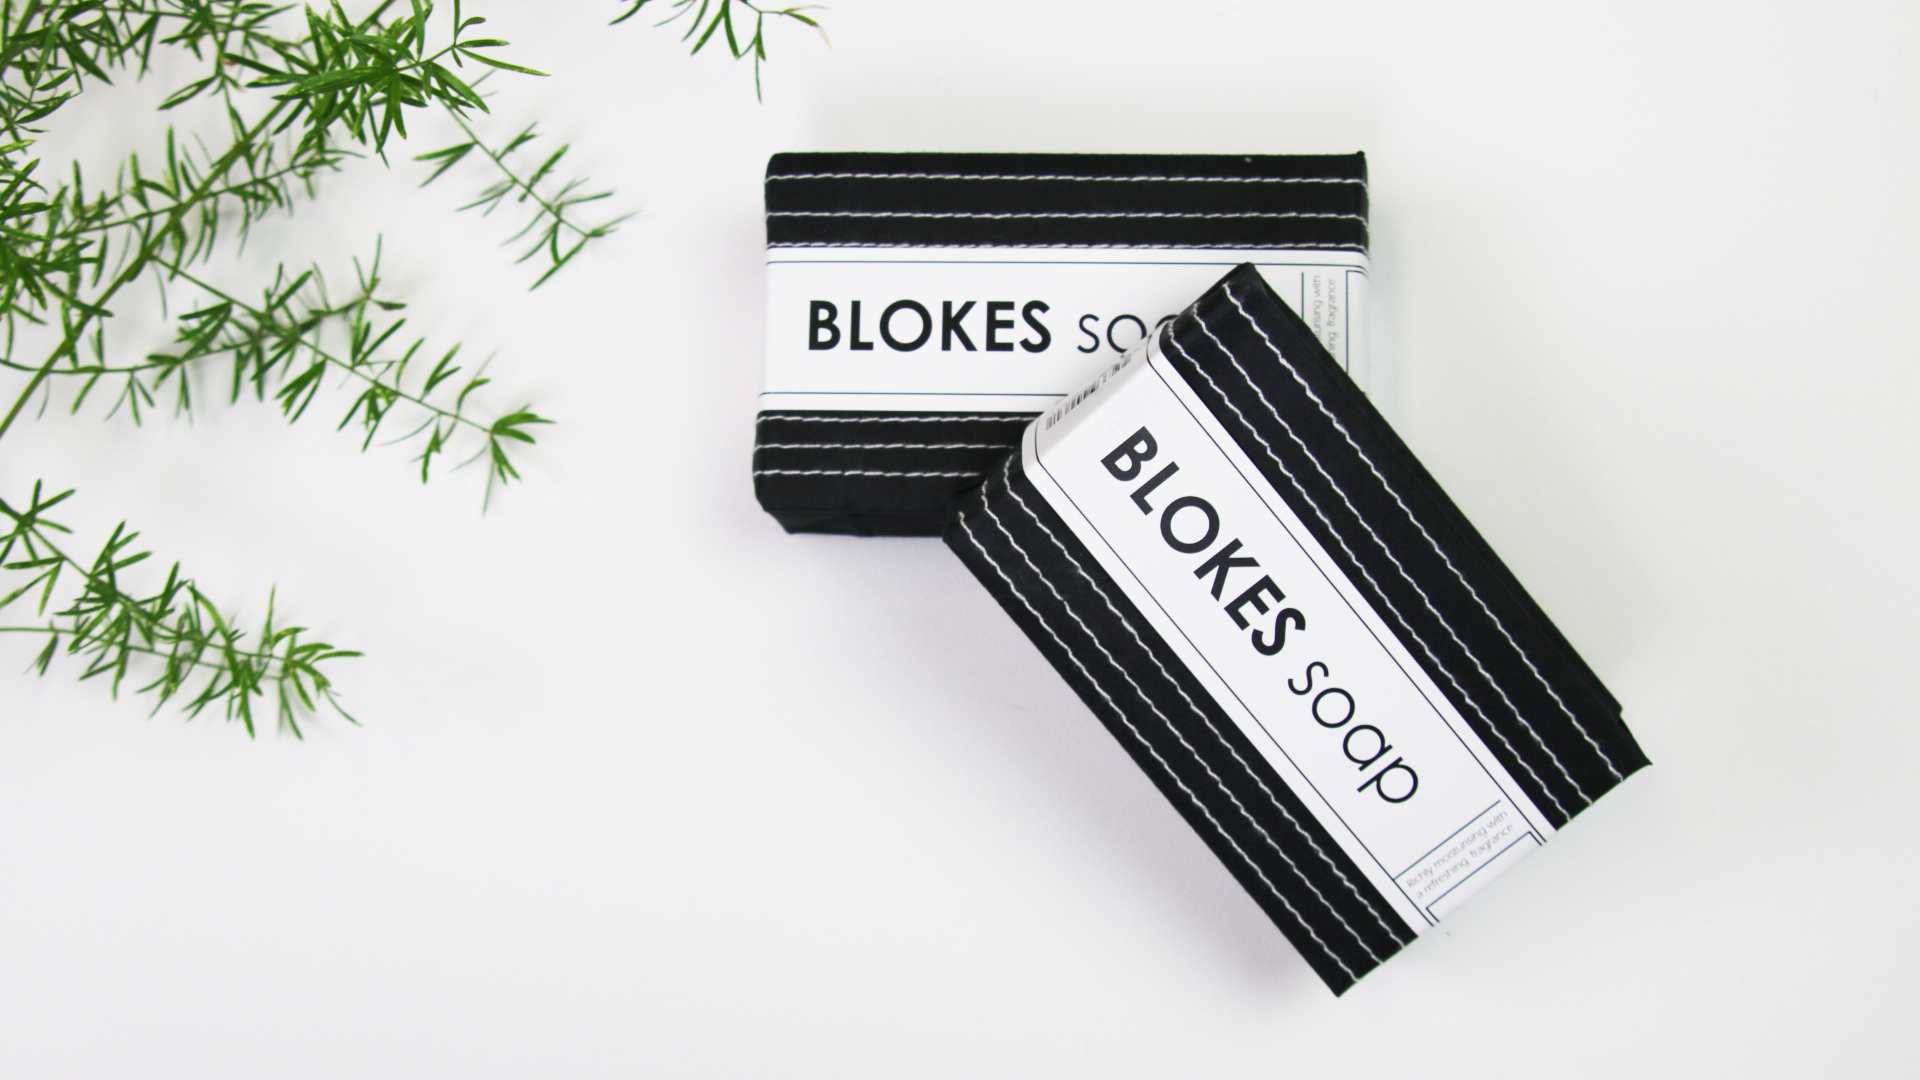 Tailor made blokes soap